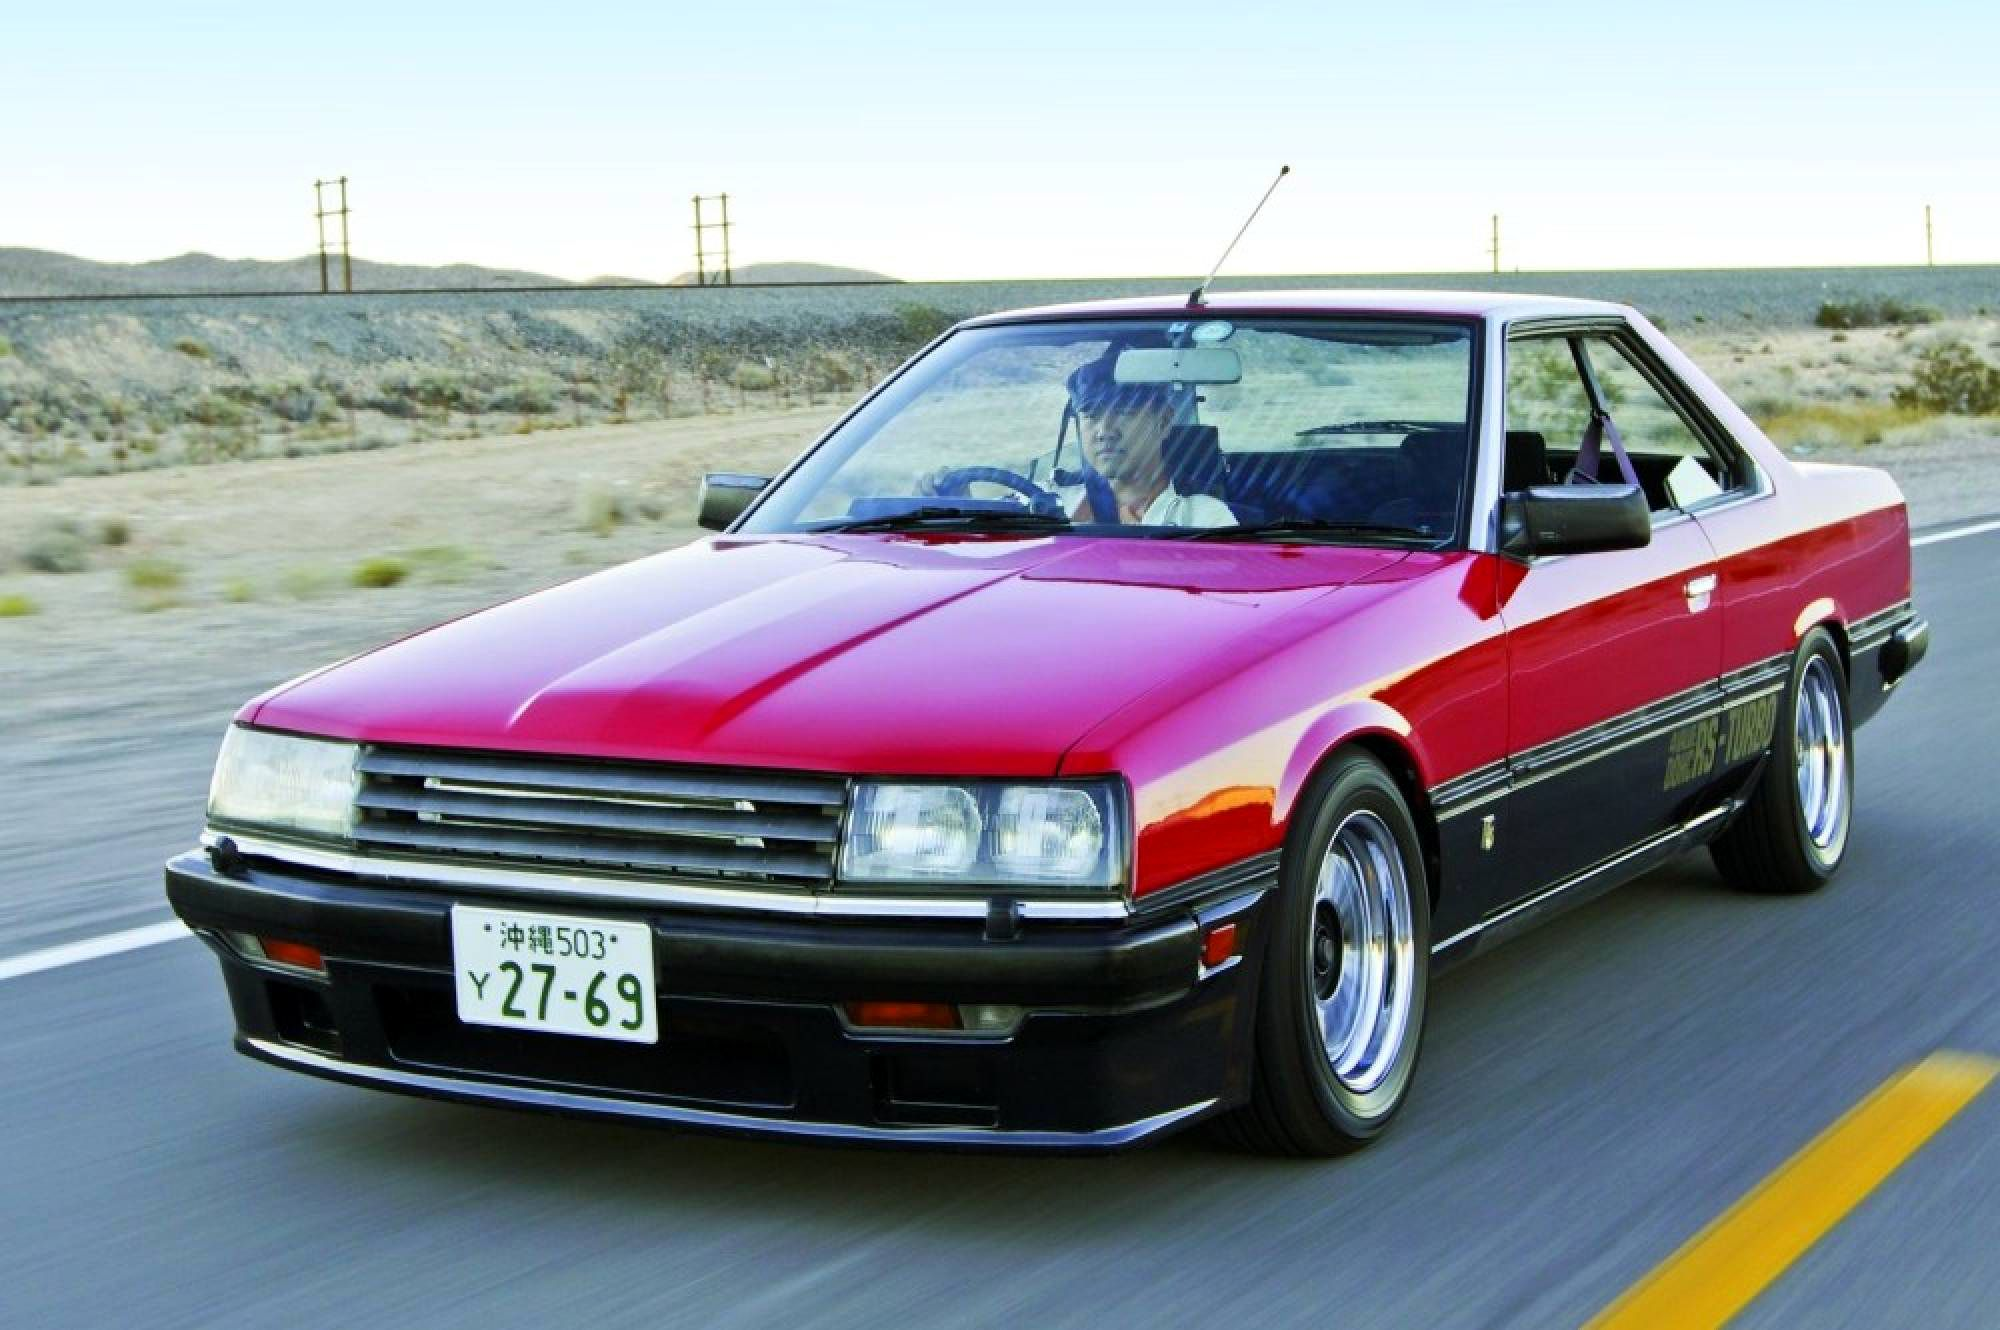 R30 Nissan Skyline Wallpaper Related Keywords & Suggestions